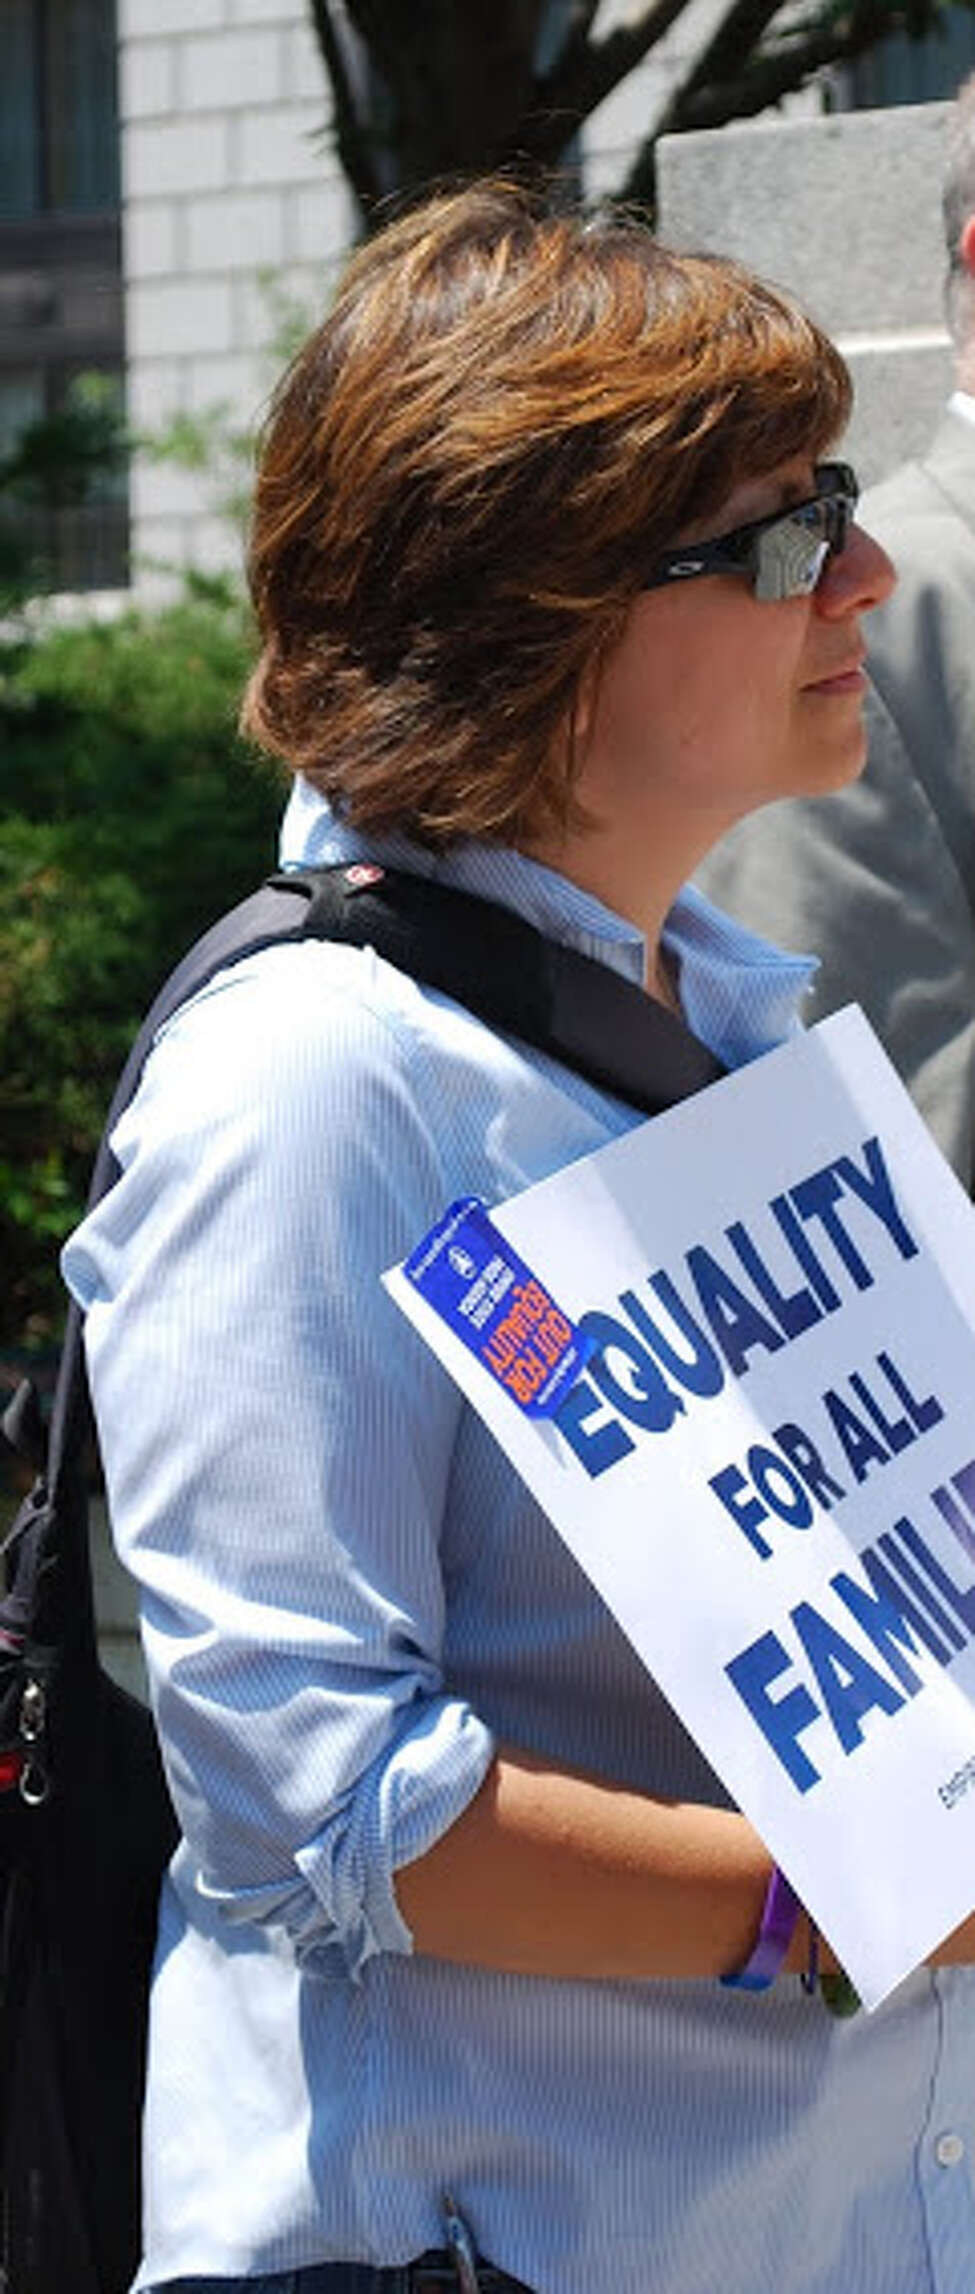 2. I was the lead organizer for the statewide effort to pass marriage equality which occurred in 2011 in NYS and 2012 in entire the US. #goodriddanceDOMA